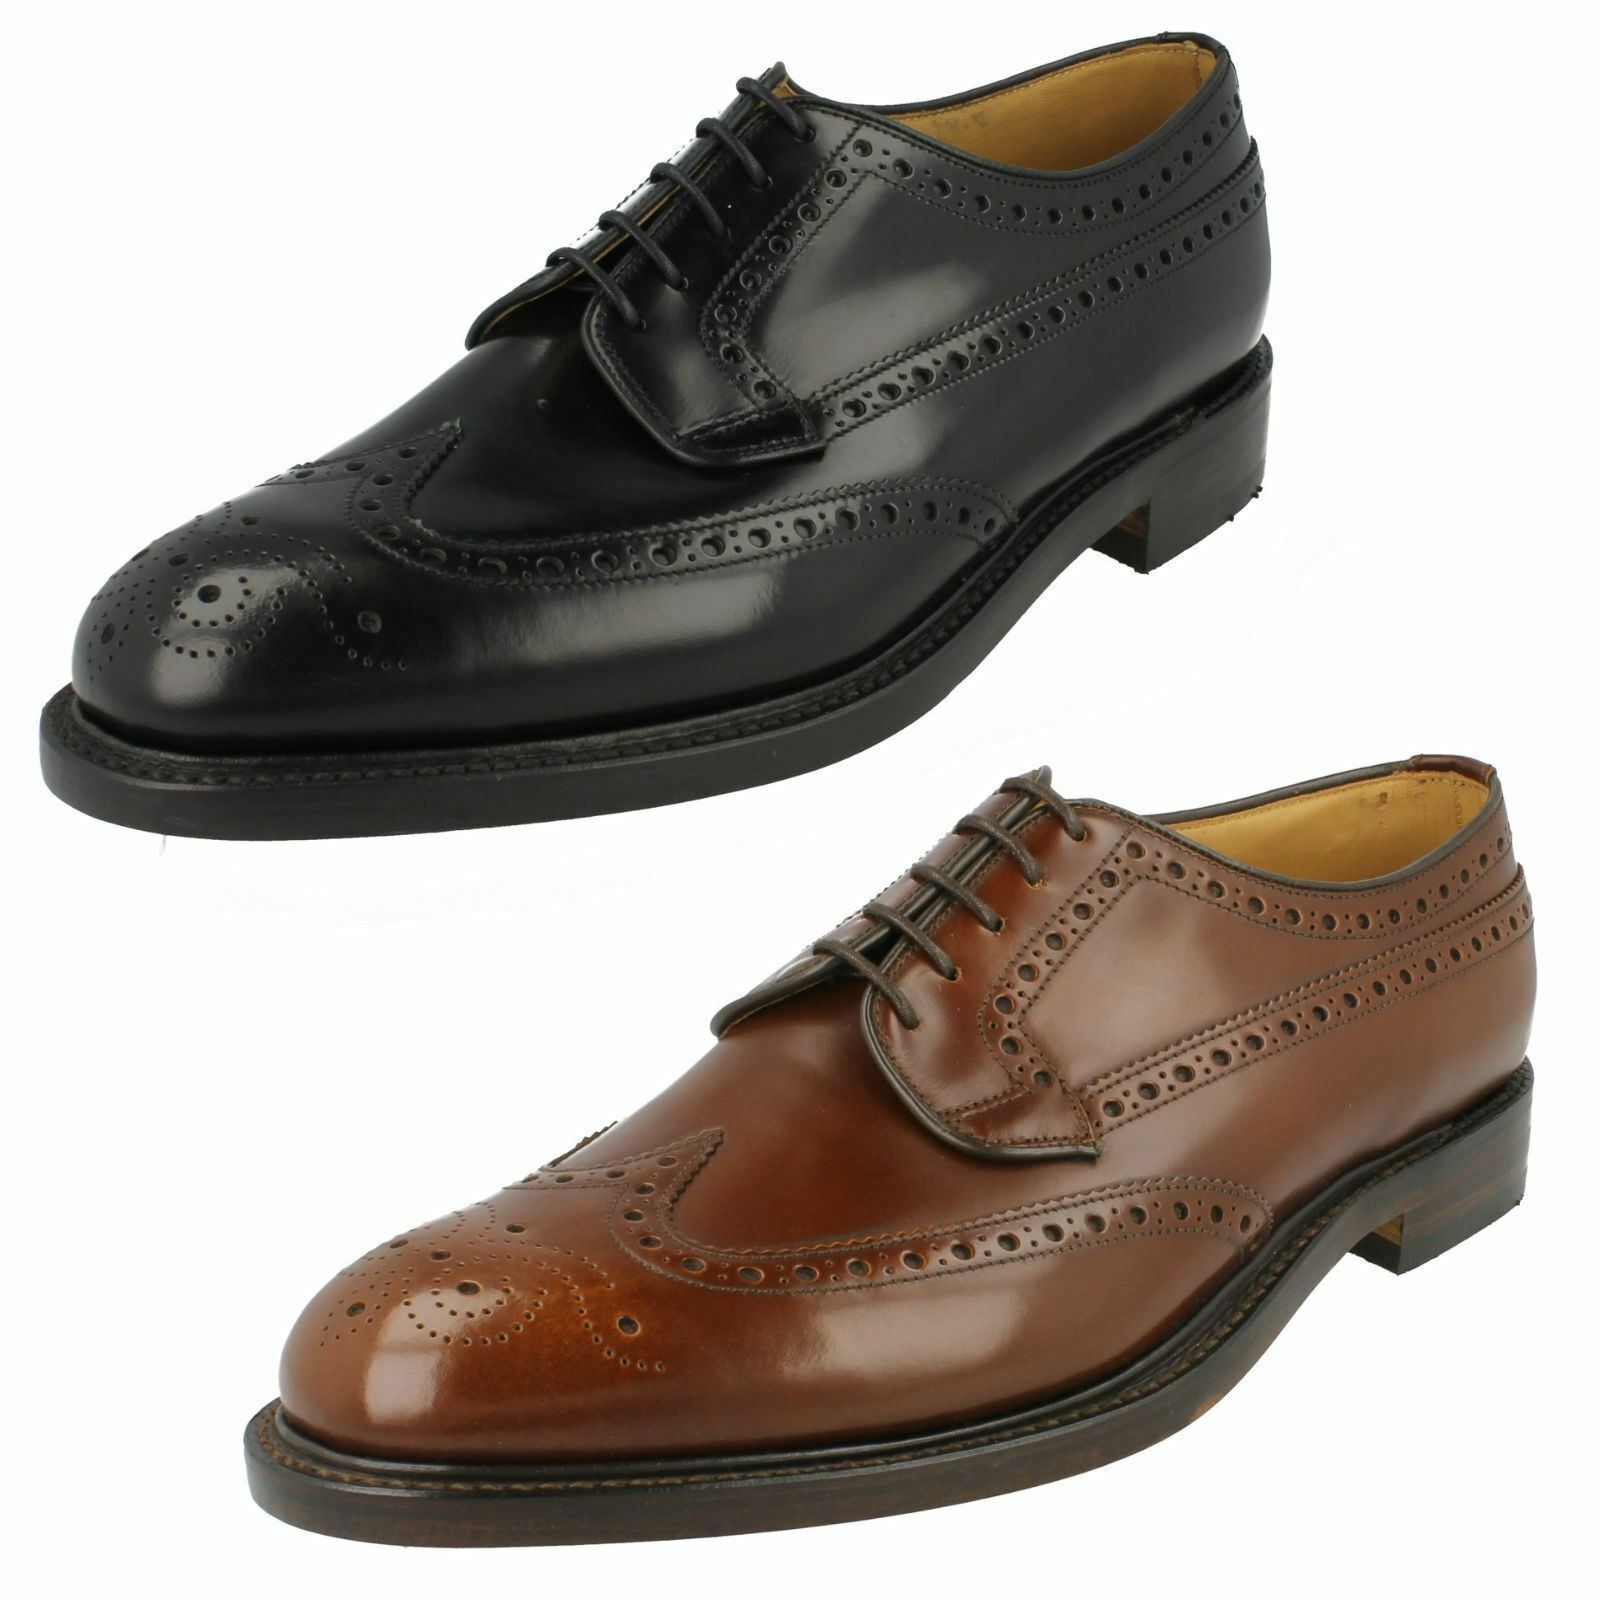 Men's Loake Formal Brogue Shoes - Braemar